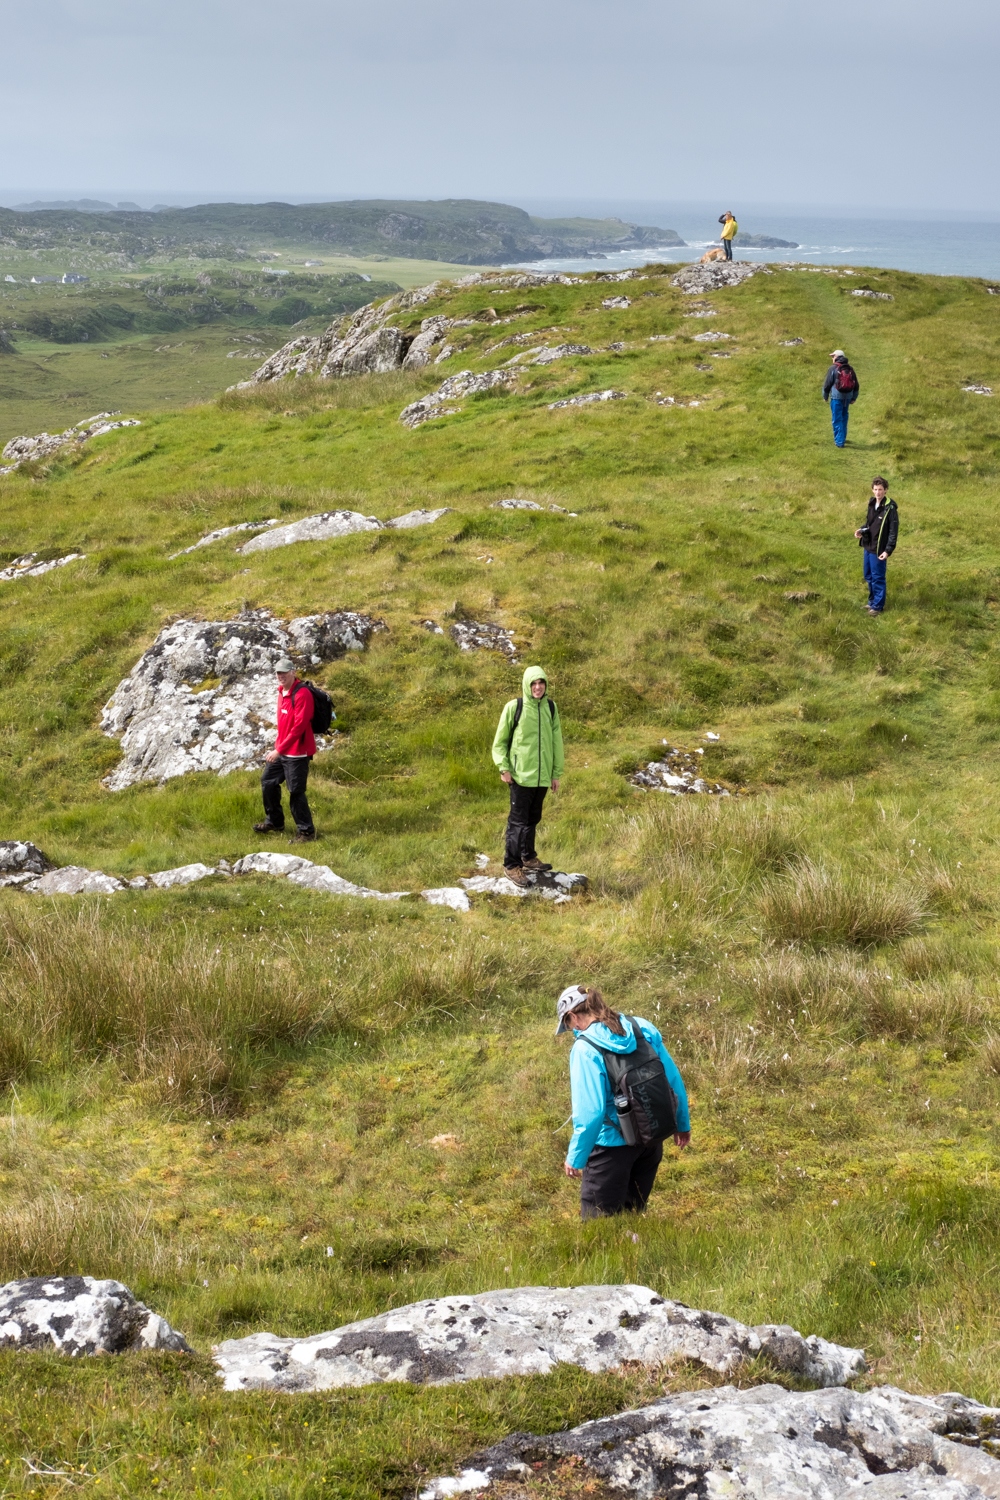 Several guests hike along a foot path on Dun I, a small hill overlooking the abbey on the island of Iona.